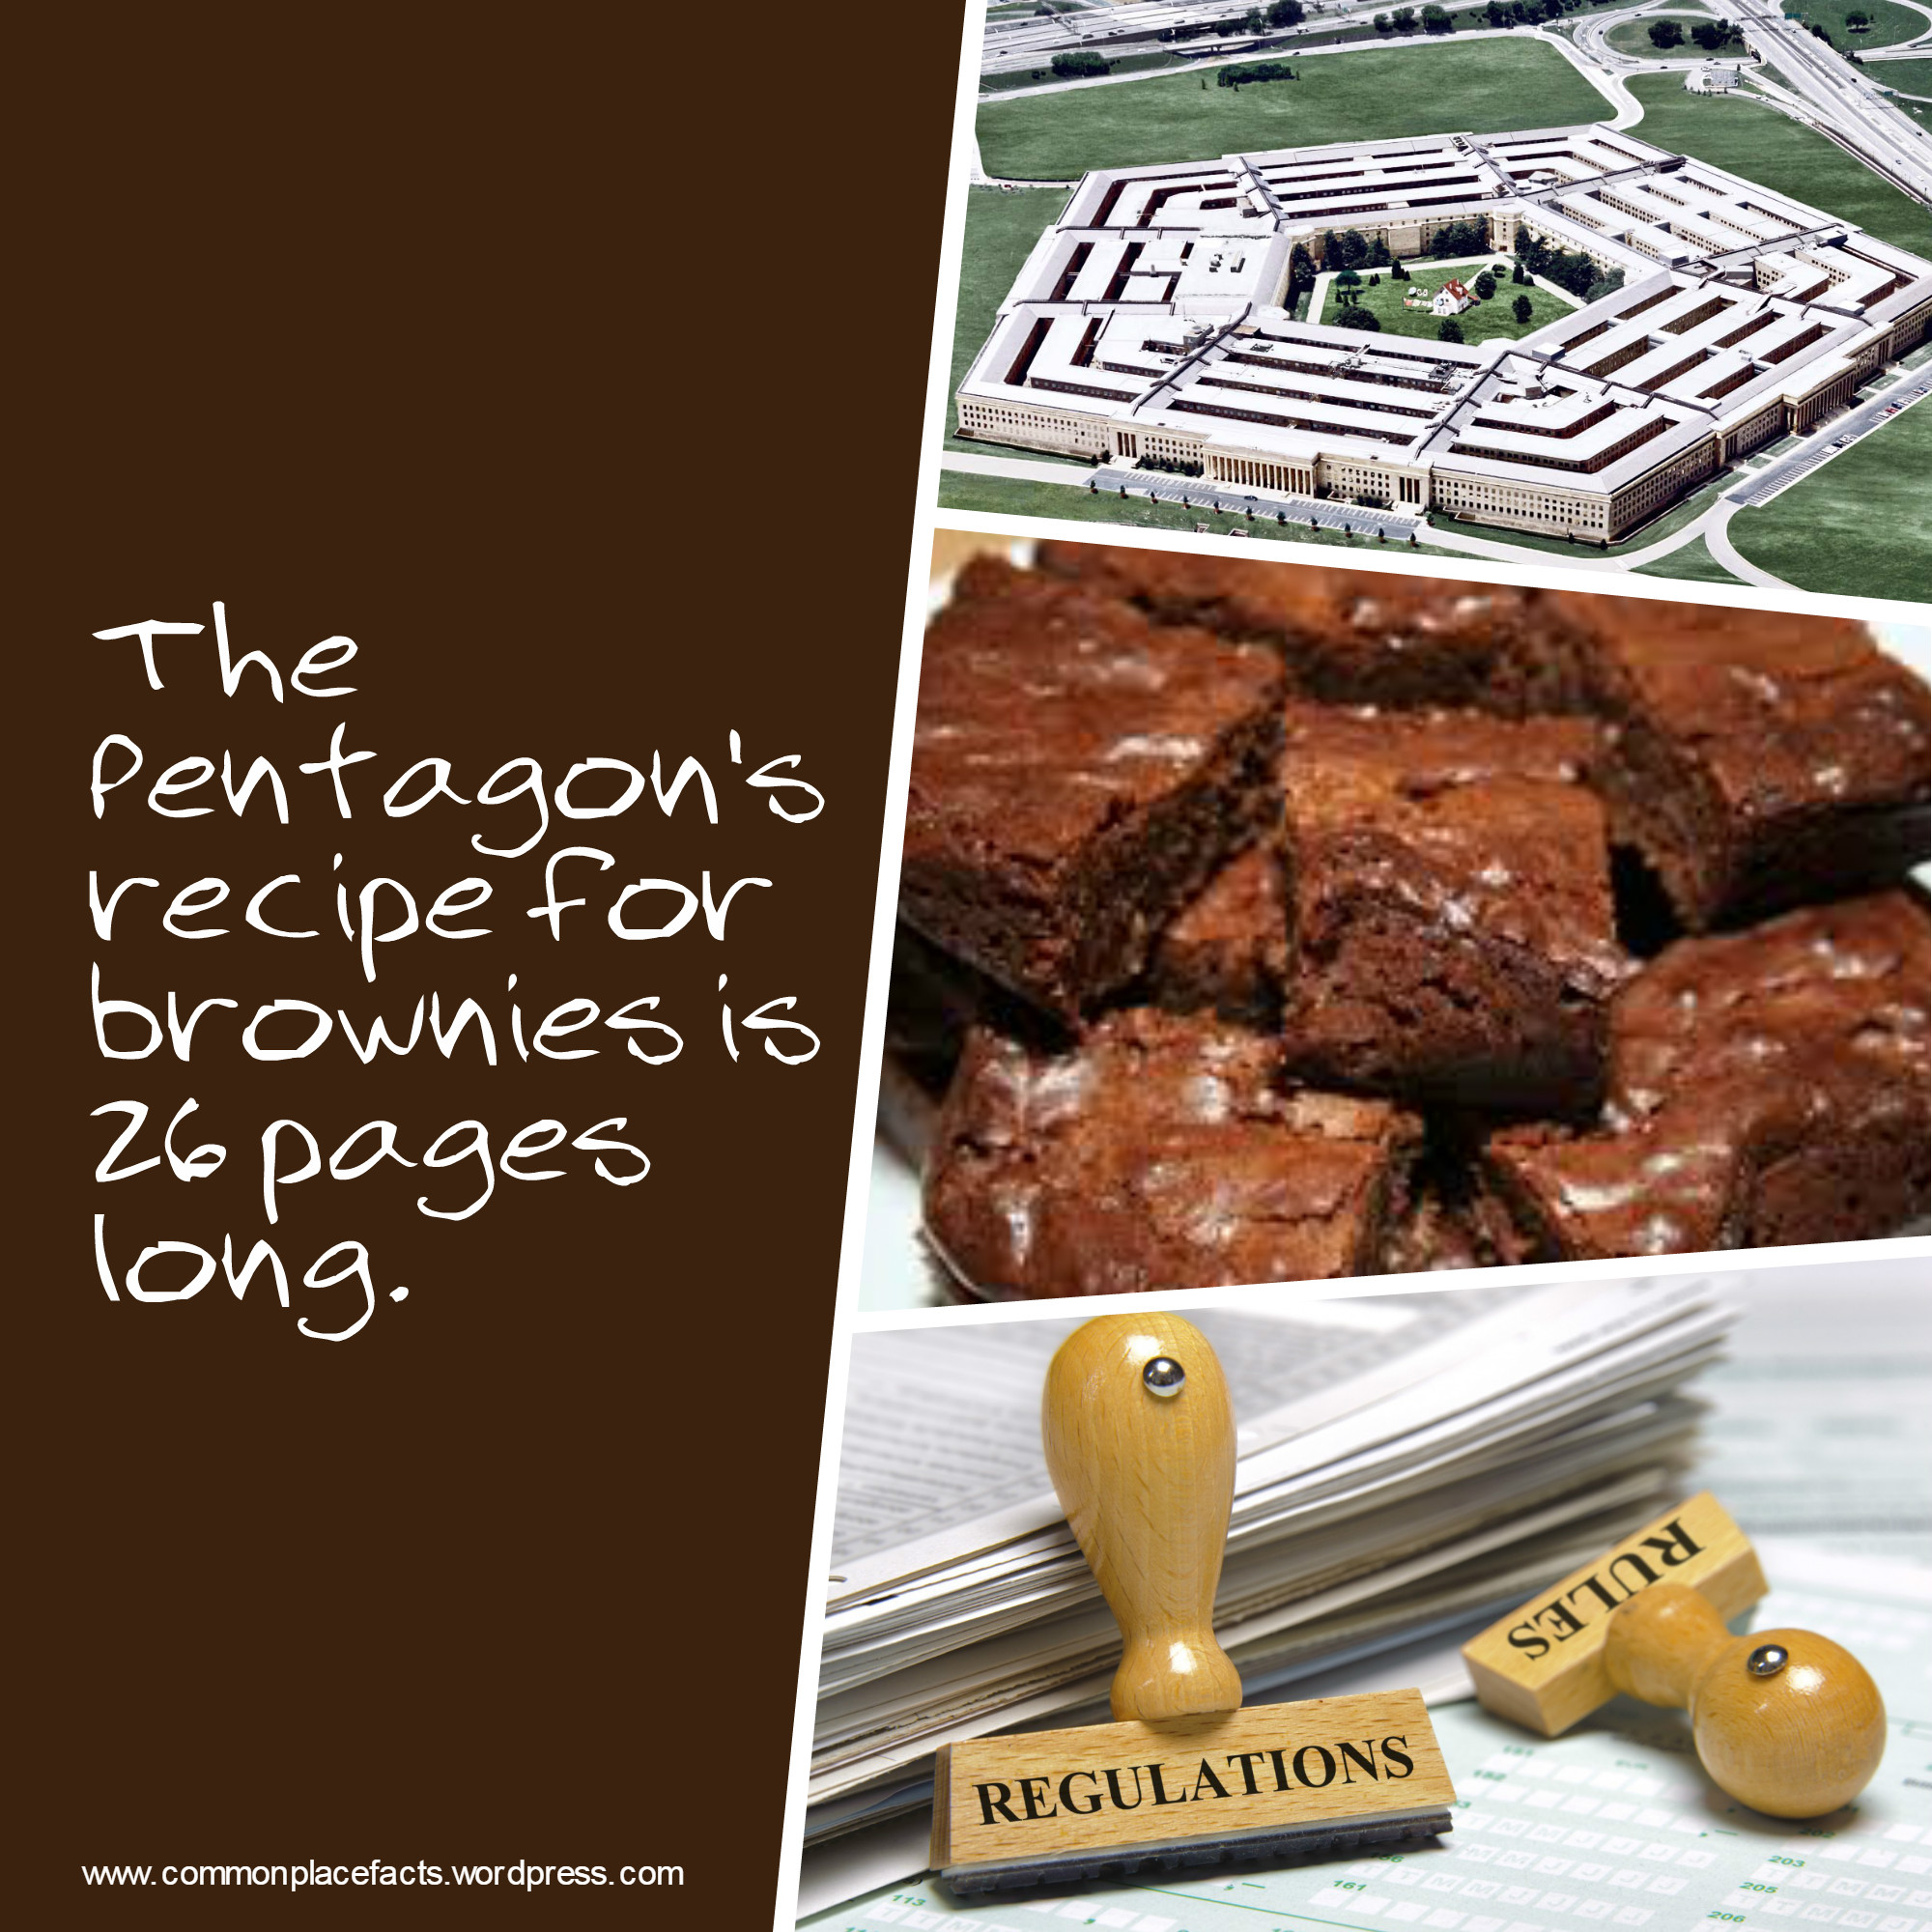 Petagon's recipe for brownies is 26 pages long